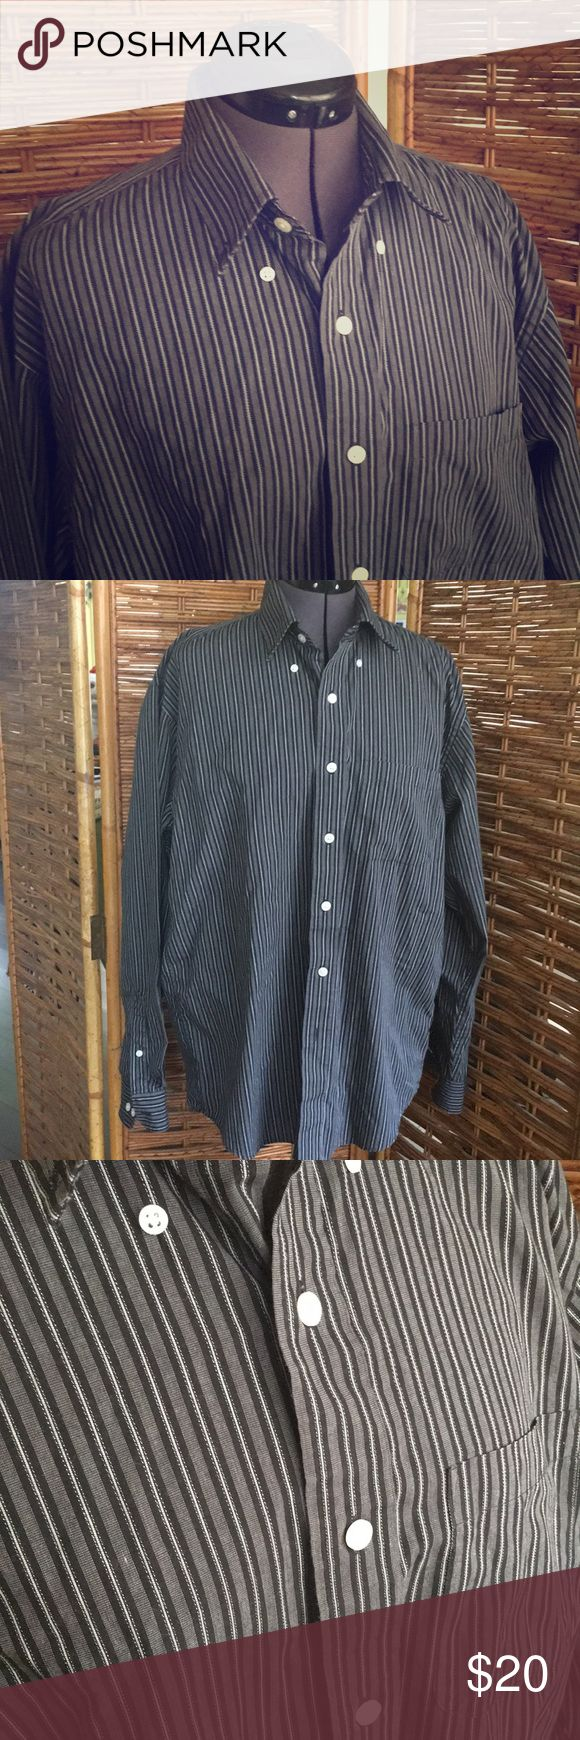 Men's Arrow shirt Men's wrinkle-free Arrow shirt in black and cream stripe pattern. M15 - 15 1/2 Arrow Shirts Casual Button Down Shirts